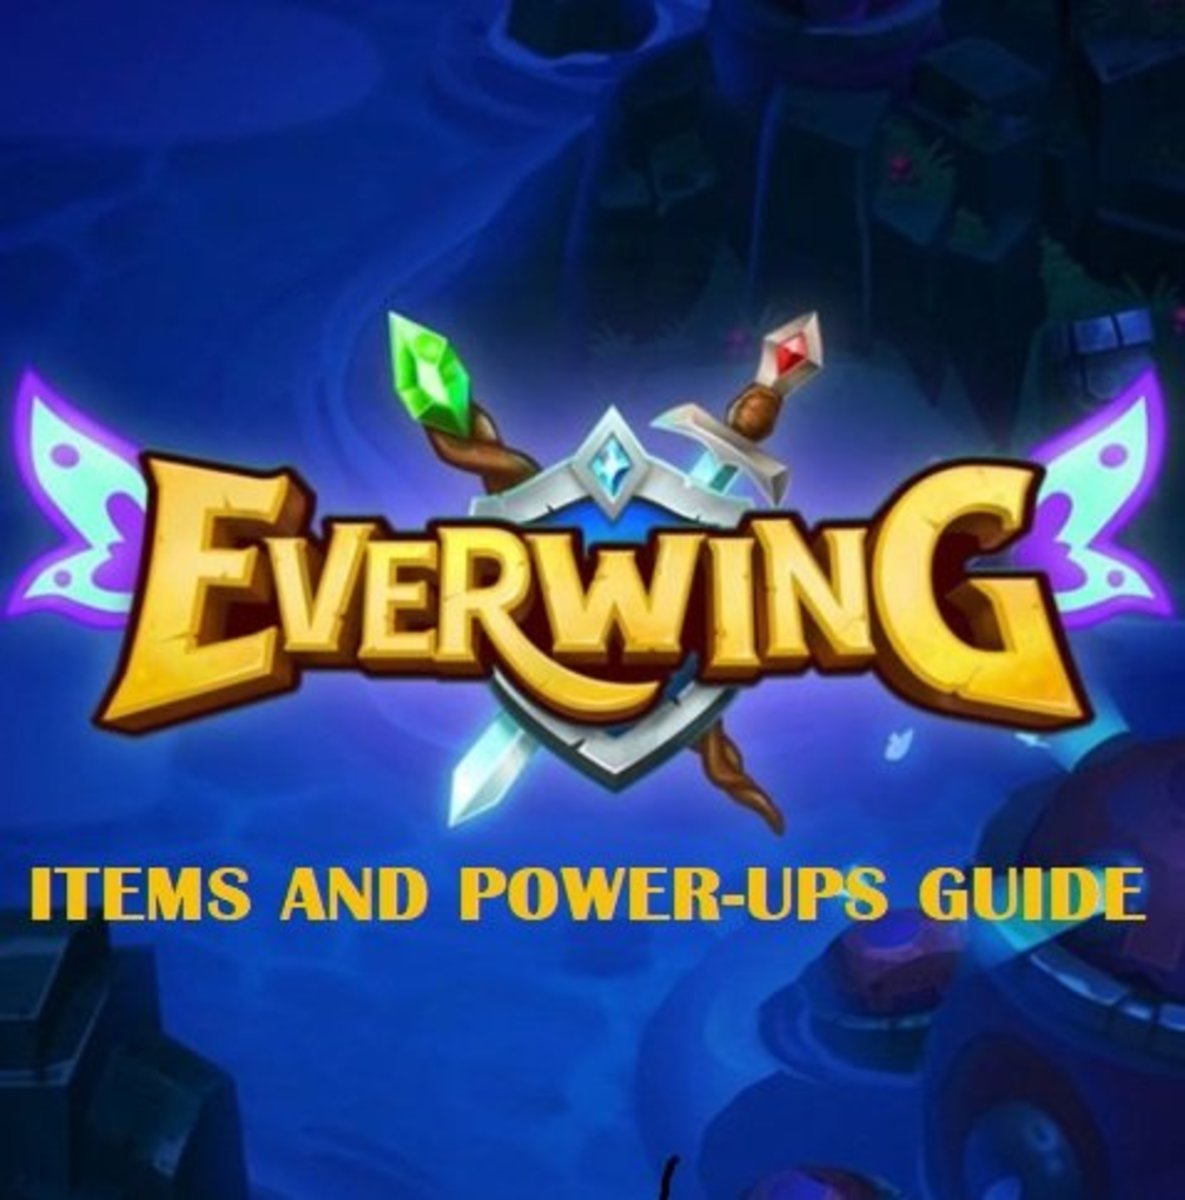 EverWing: Items and Power-Ups Guide